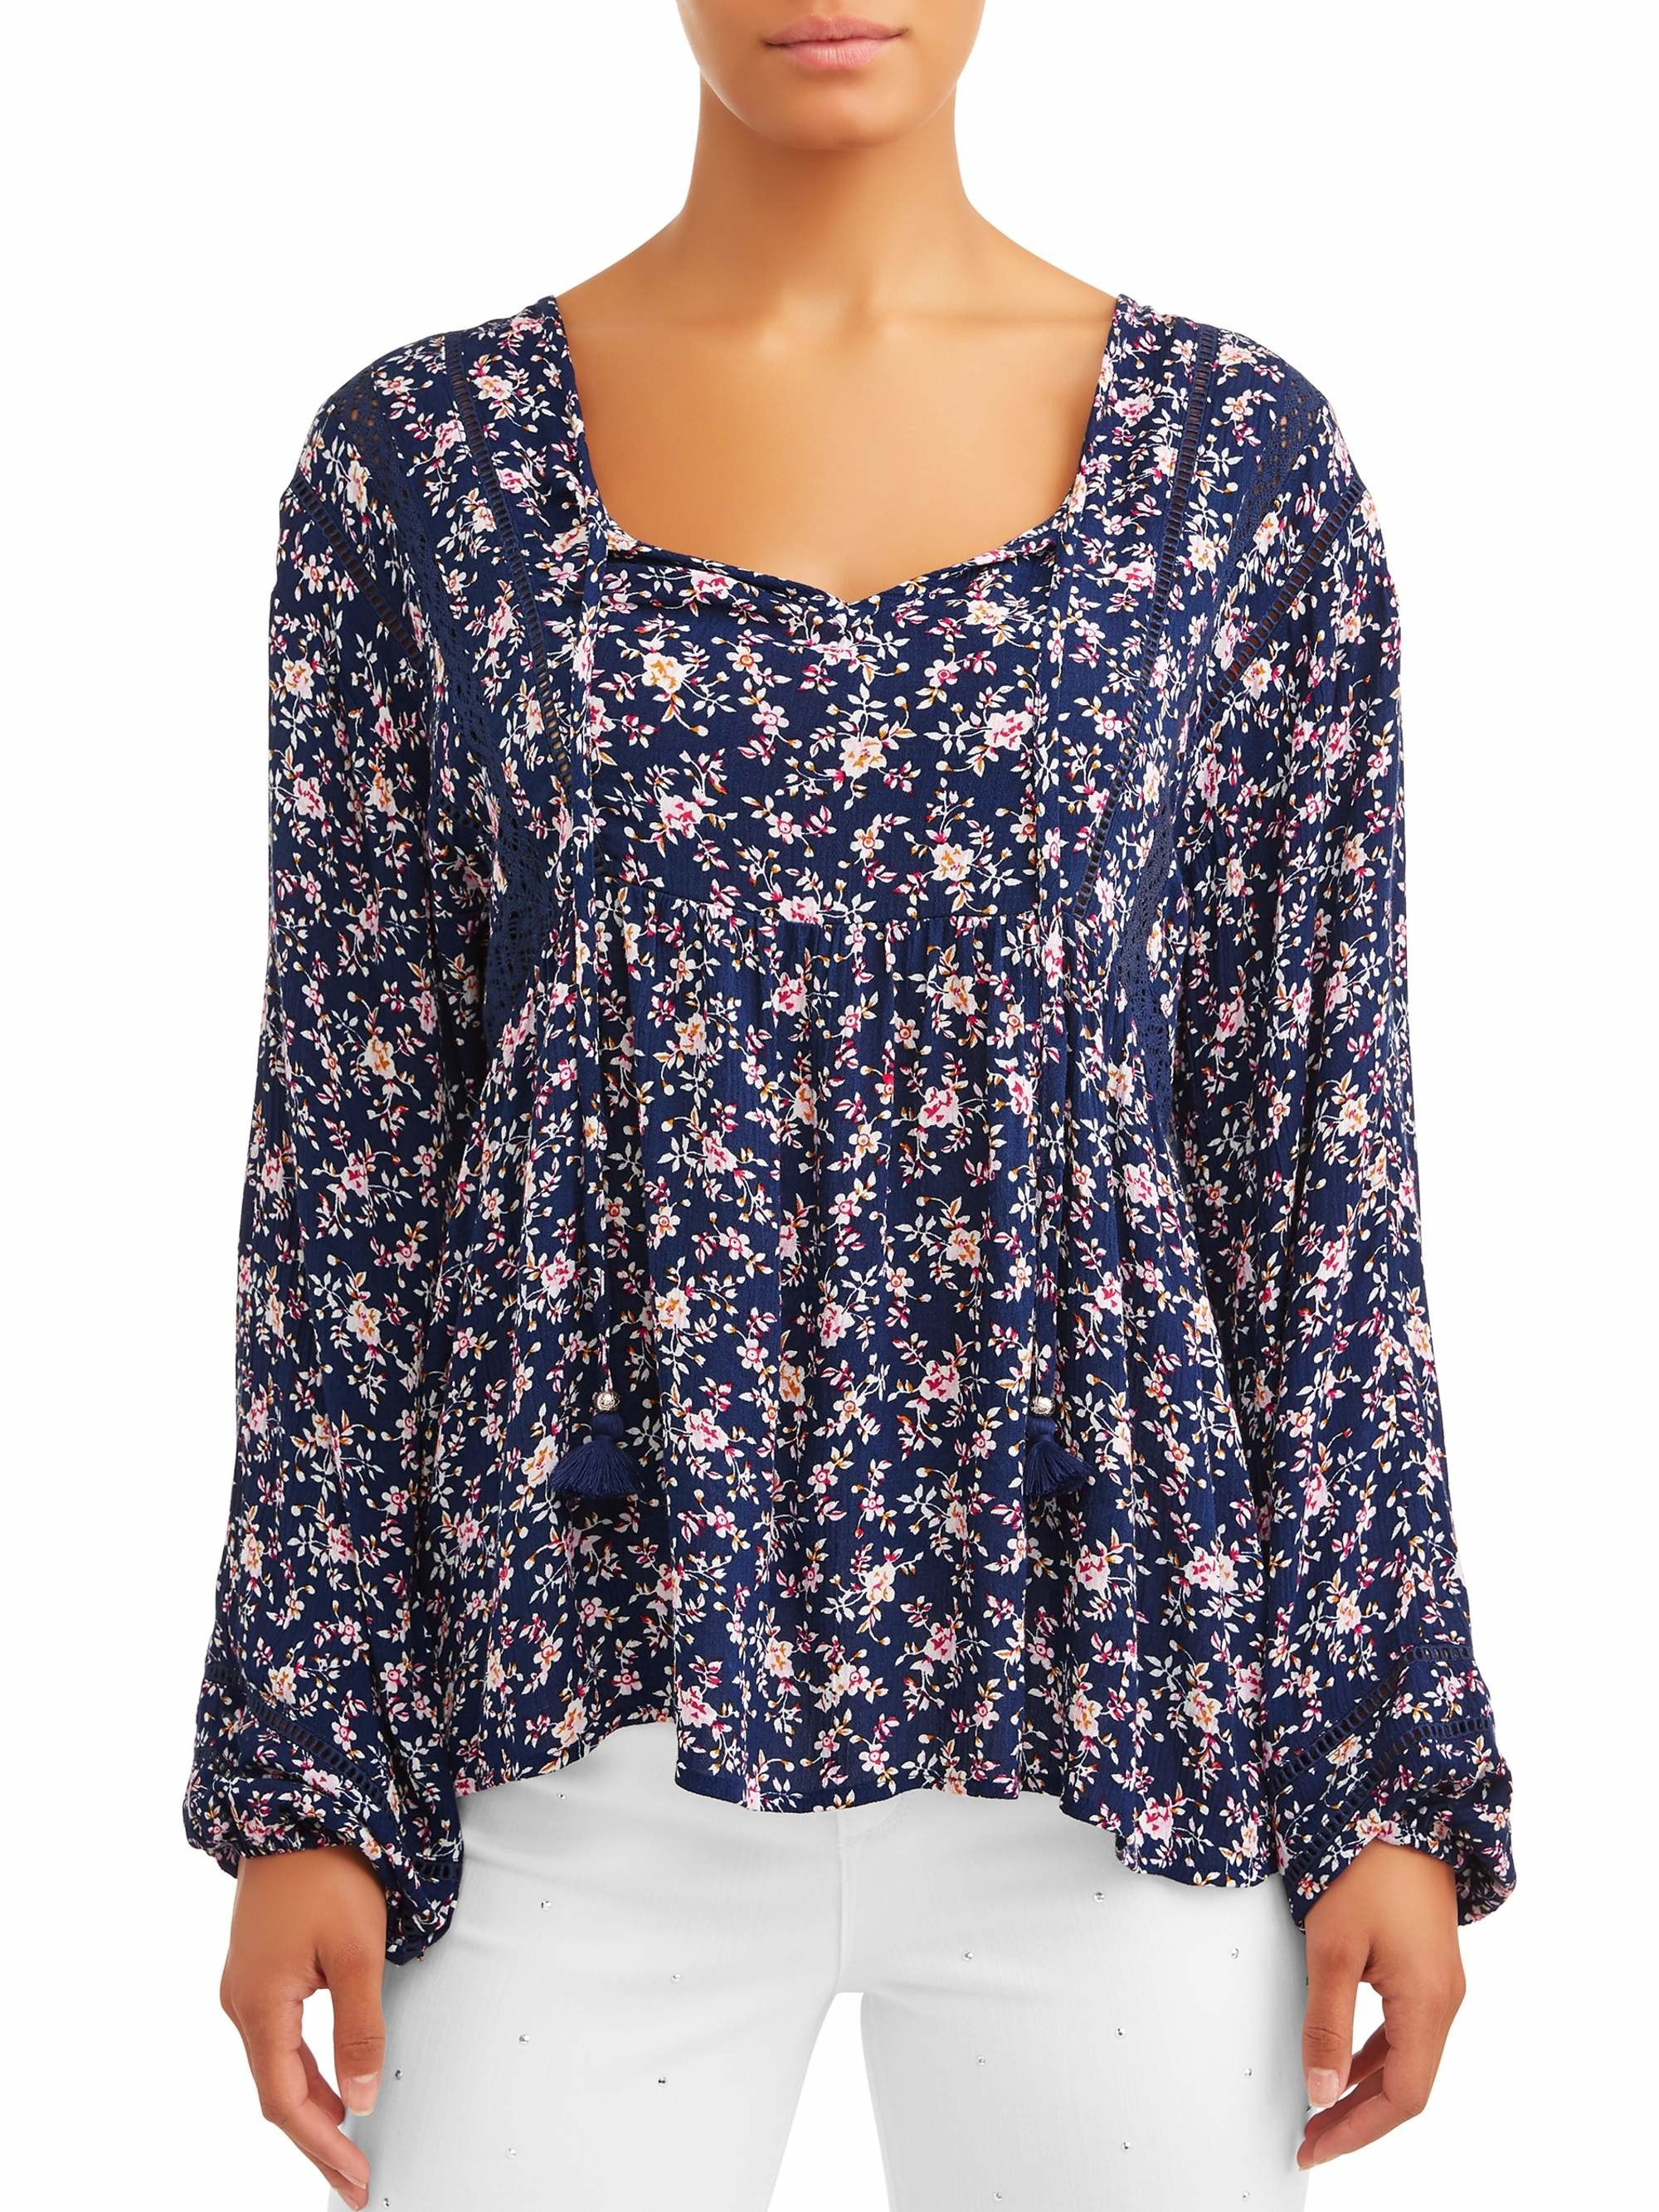 The blue and pink floral blouse